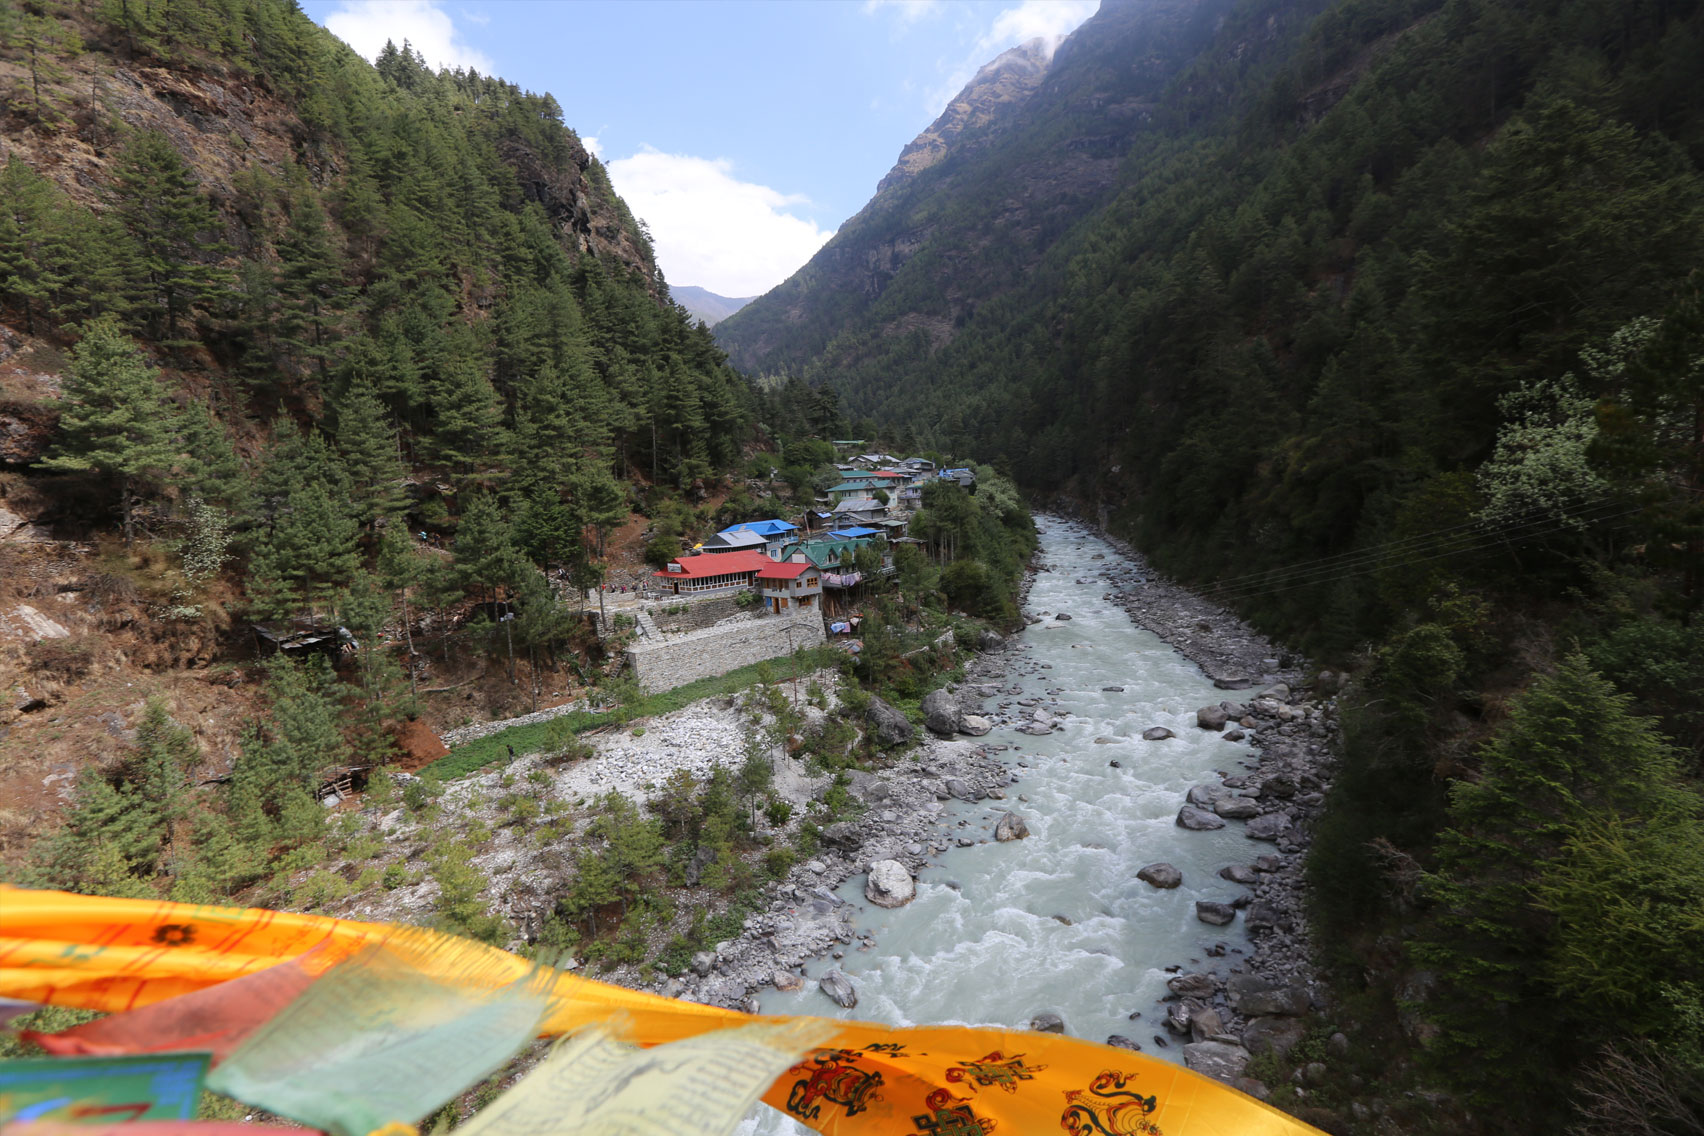 Day 14: Trek from Monzo (2845m) to Lukla (5 hrs, 2860m)